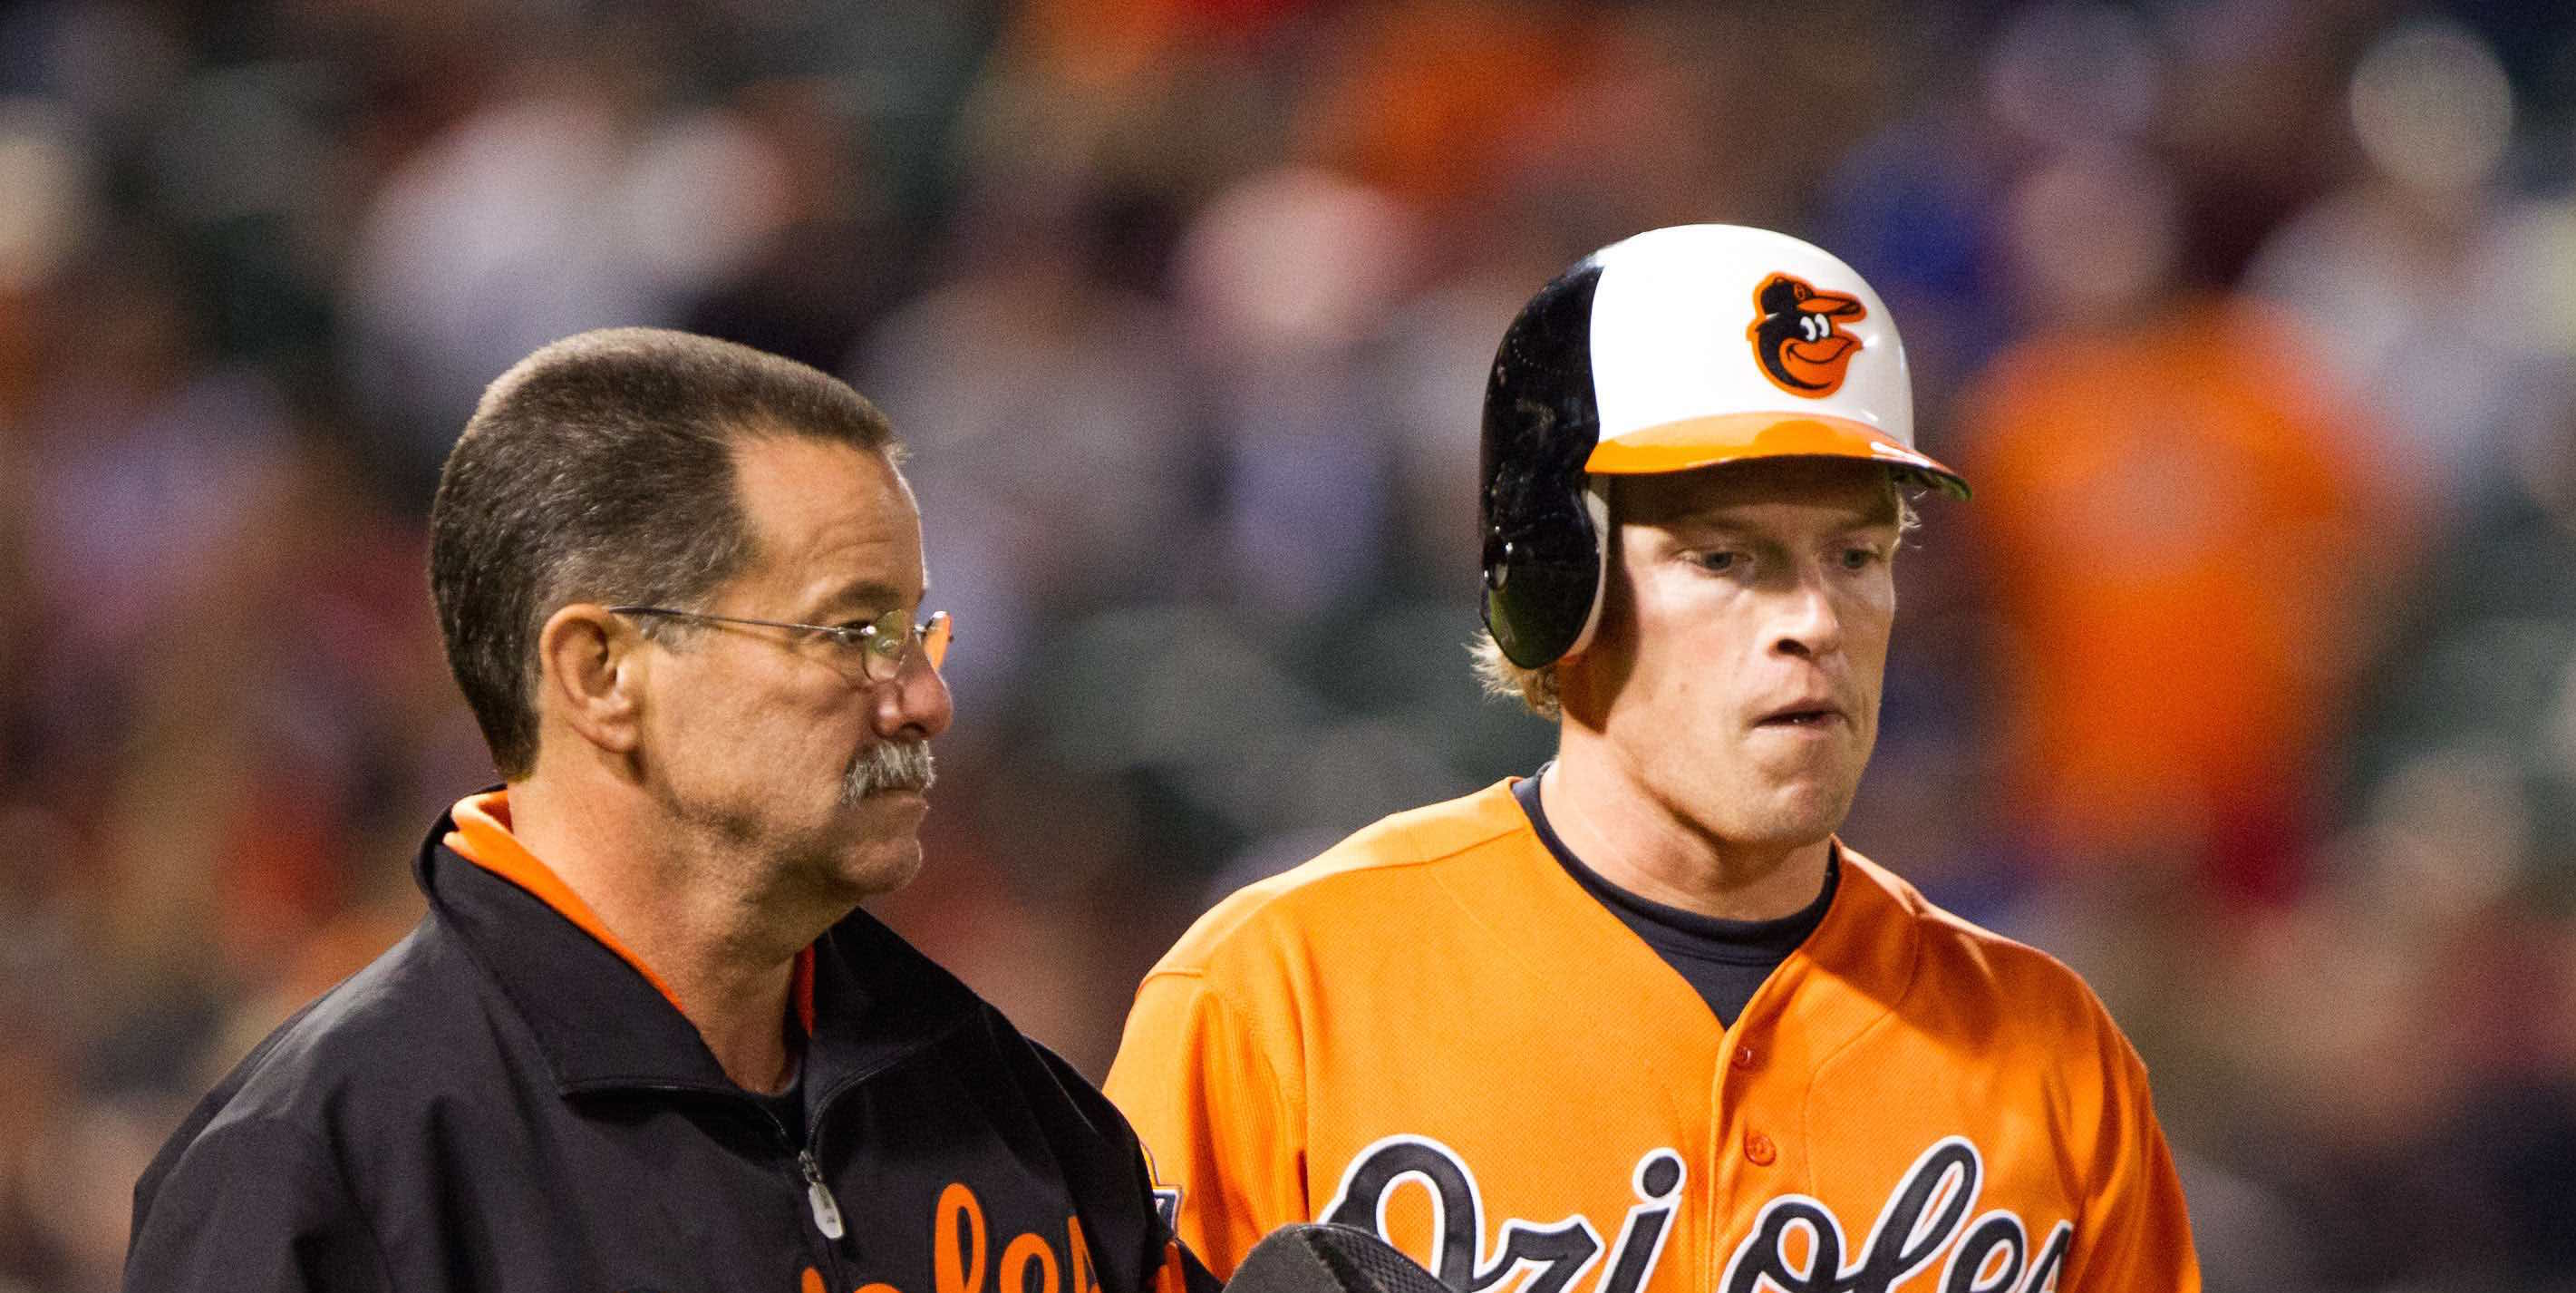 Video Surfaces of Retired MLB Player Nate McLouth Speaking Near-Perfect Dominican Spanish